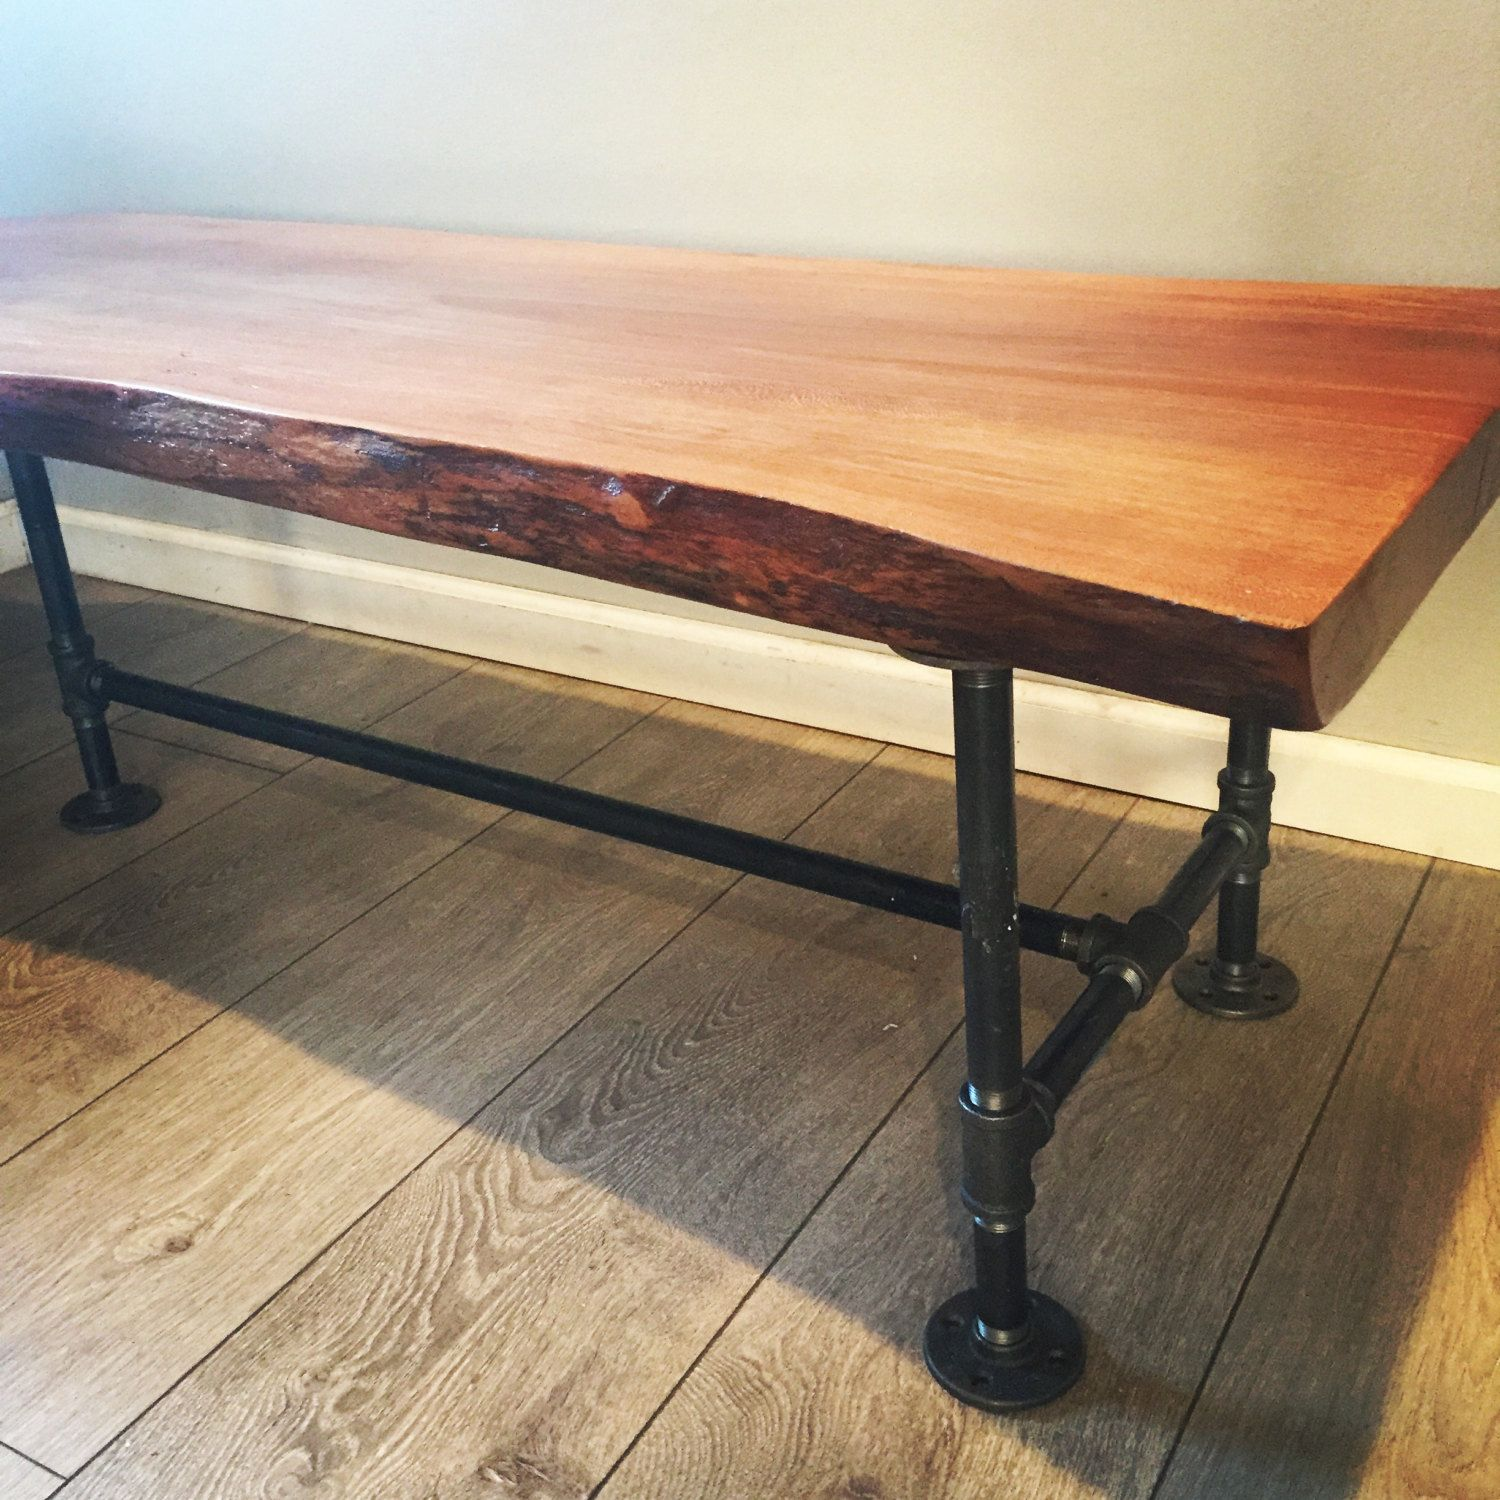 690013d0b18b8b0e93363066b5354970 Top Result 50 Lovely Redwood Coffee Table Photos 2017 Hgd6